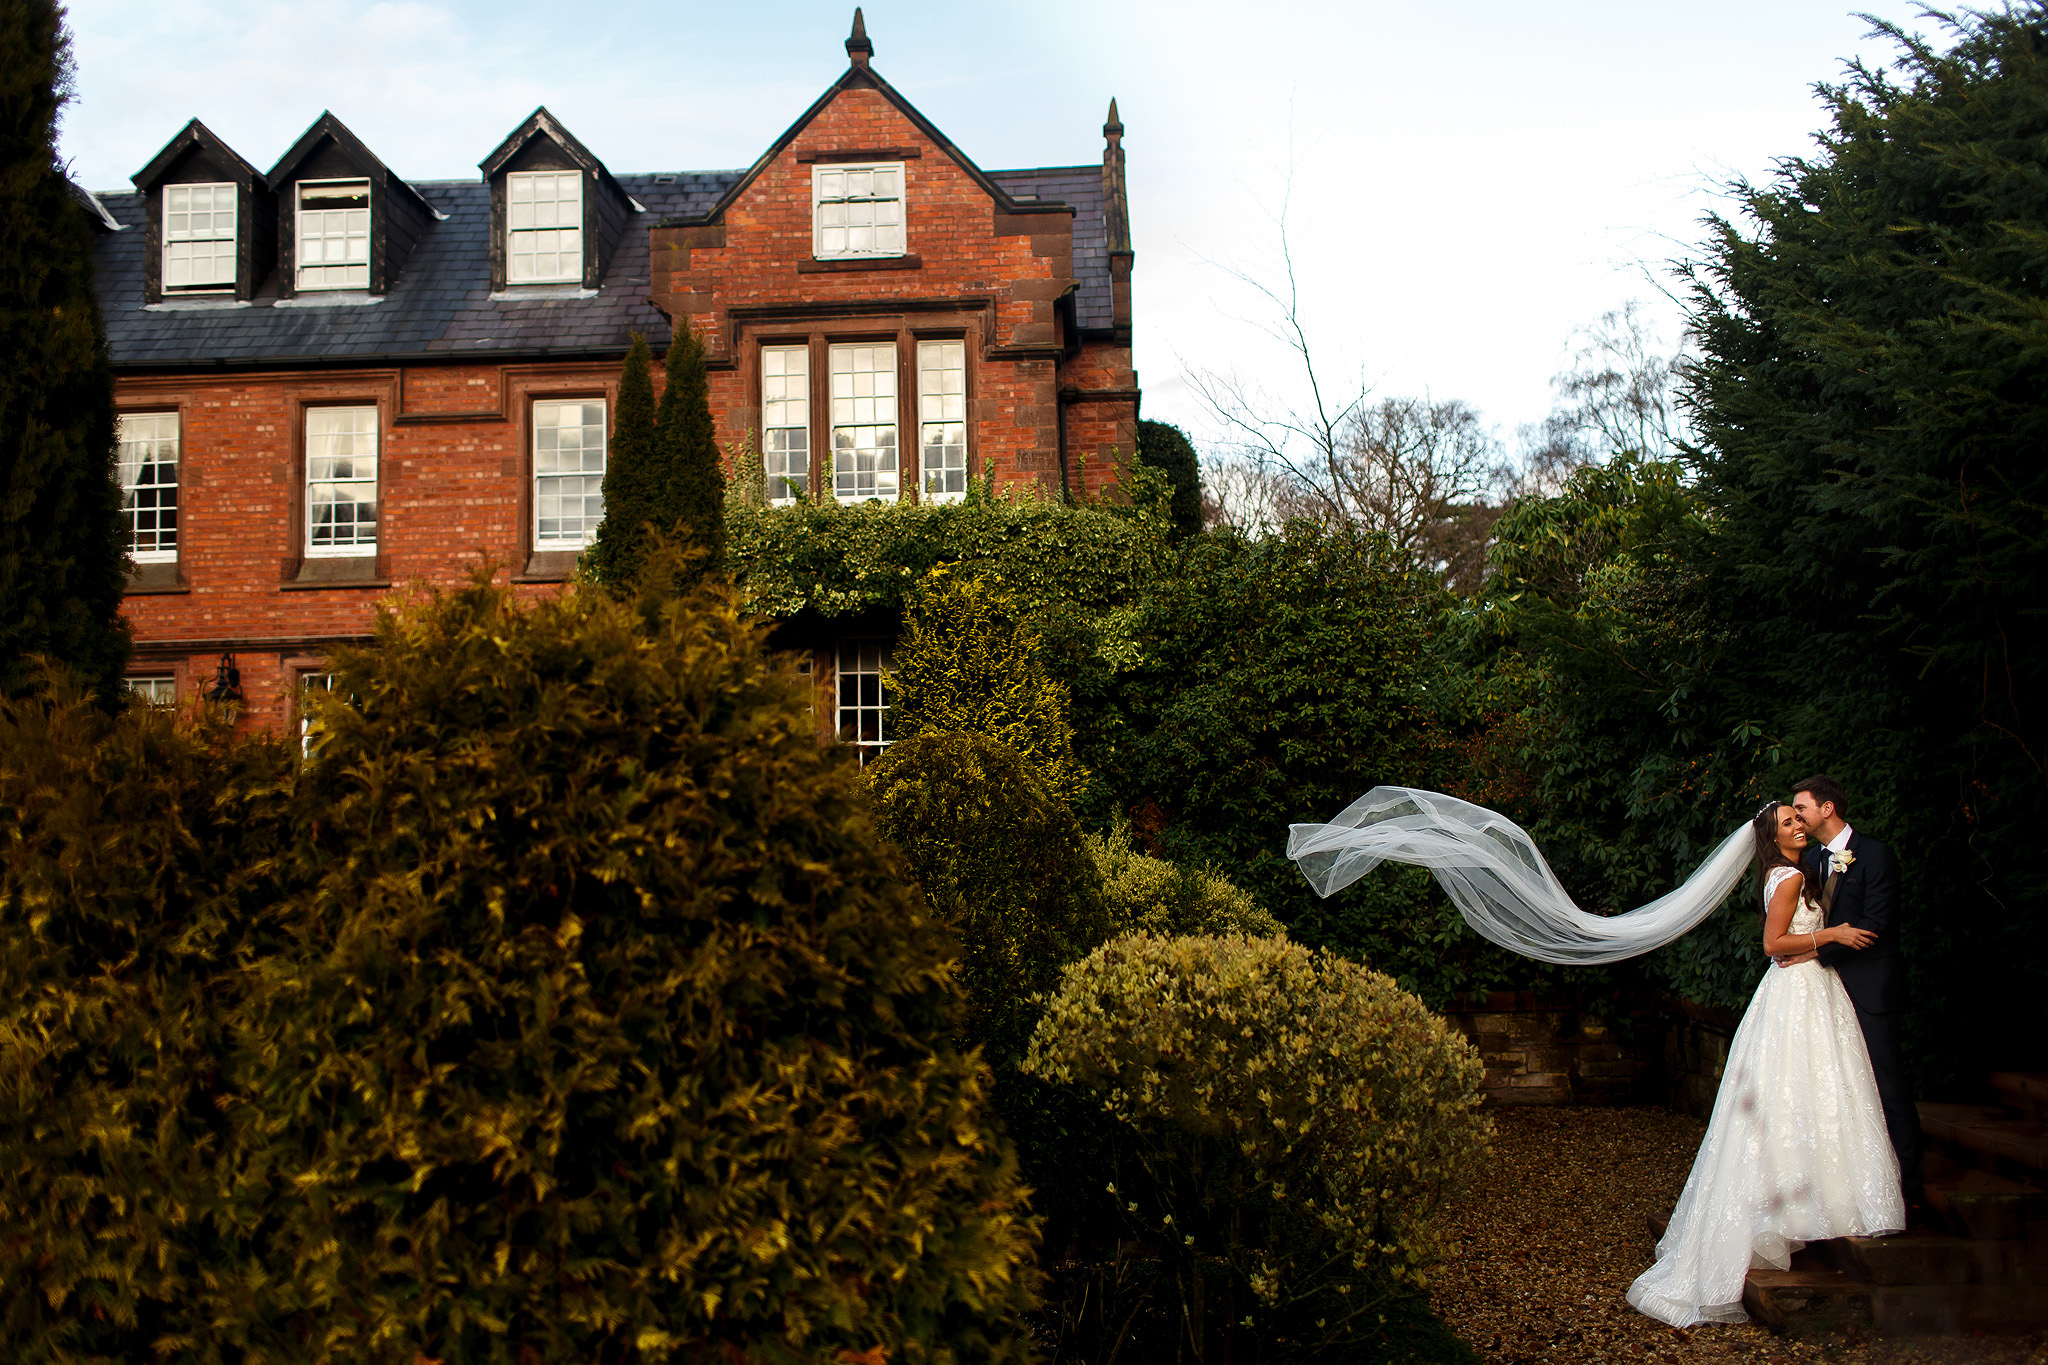 Bride wearing long lace wedding dress with sequin underskirt holding onto groom in the gardens of Nunsmere Hall as her long wedding veil flows behind them showing the Hall in the background